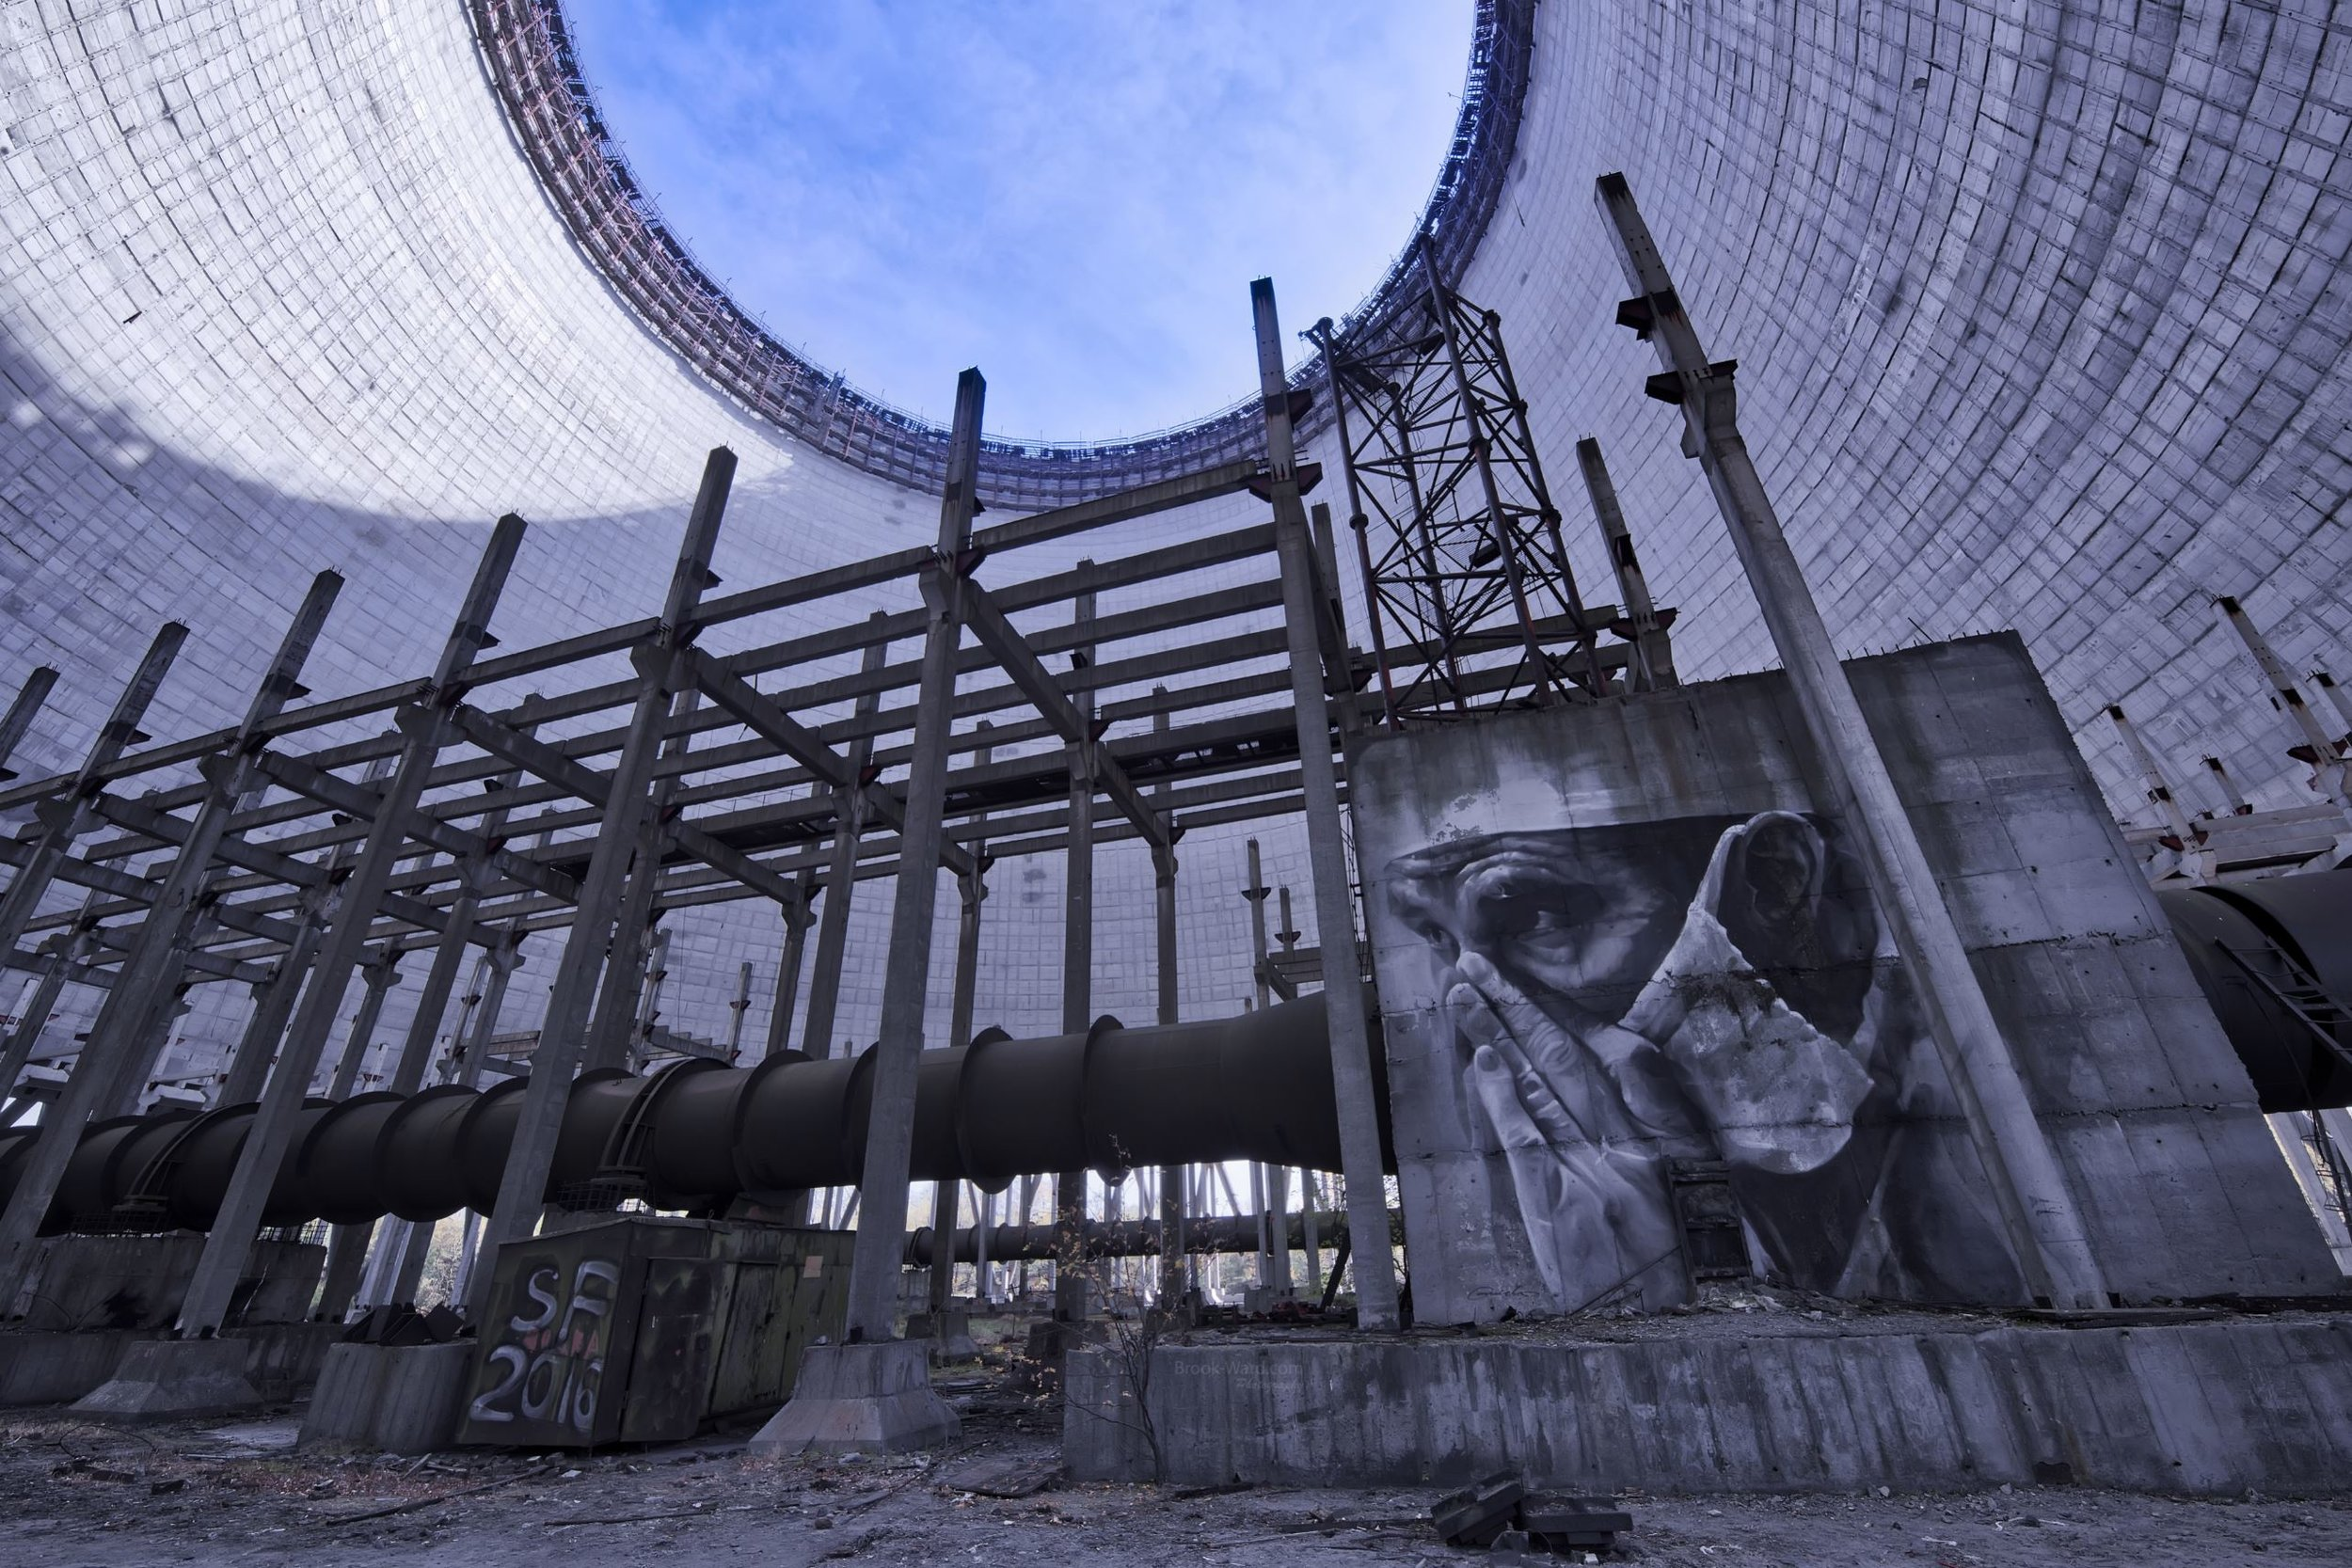 Chernobyl Cooling Tower - Ukraine